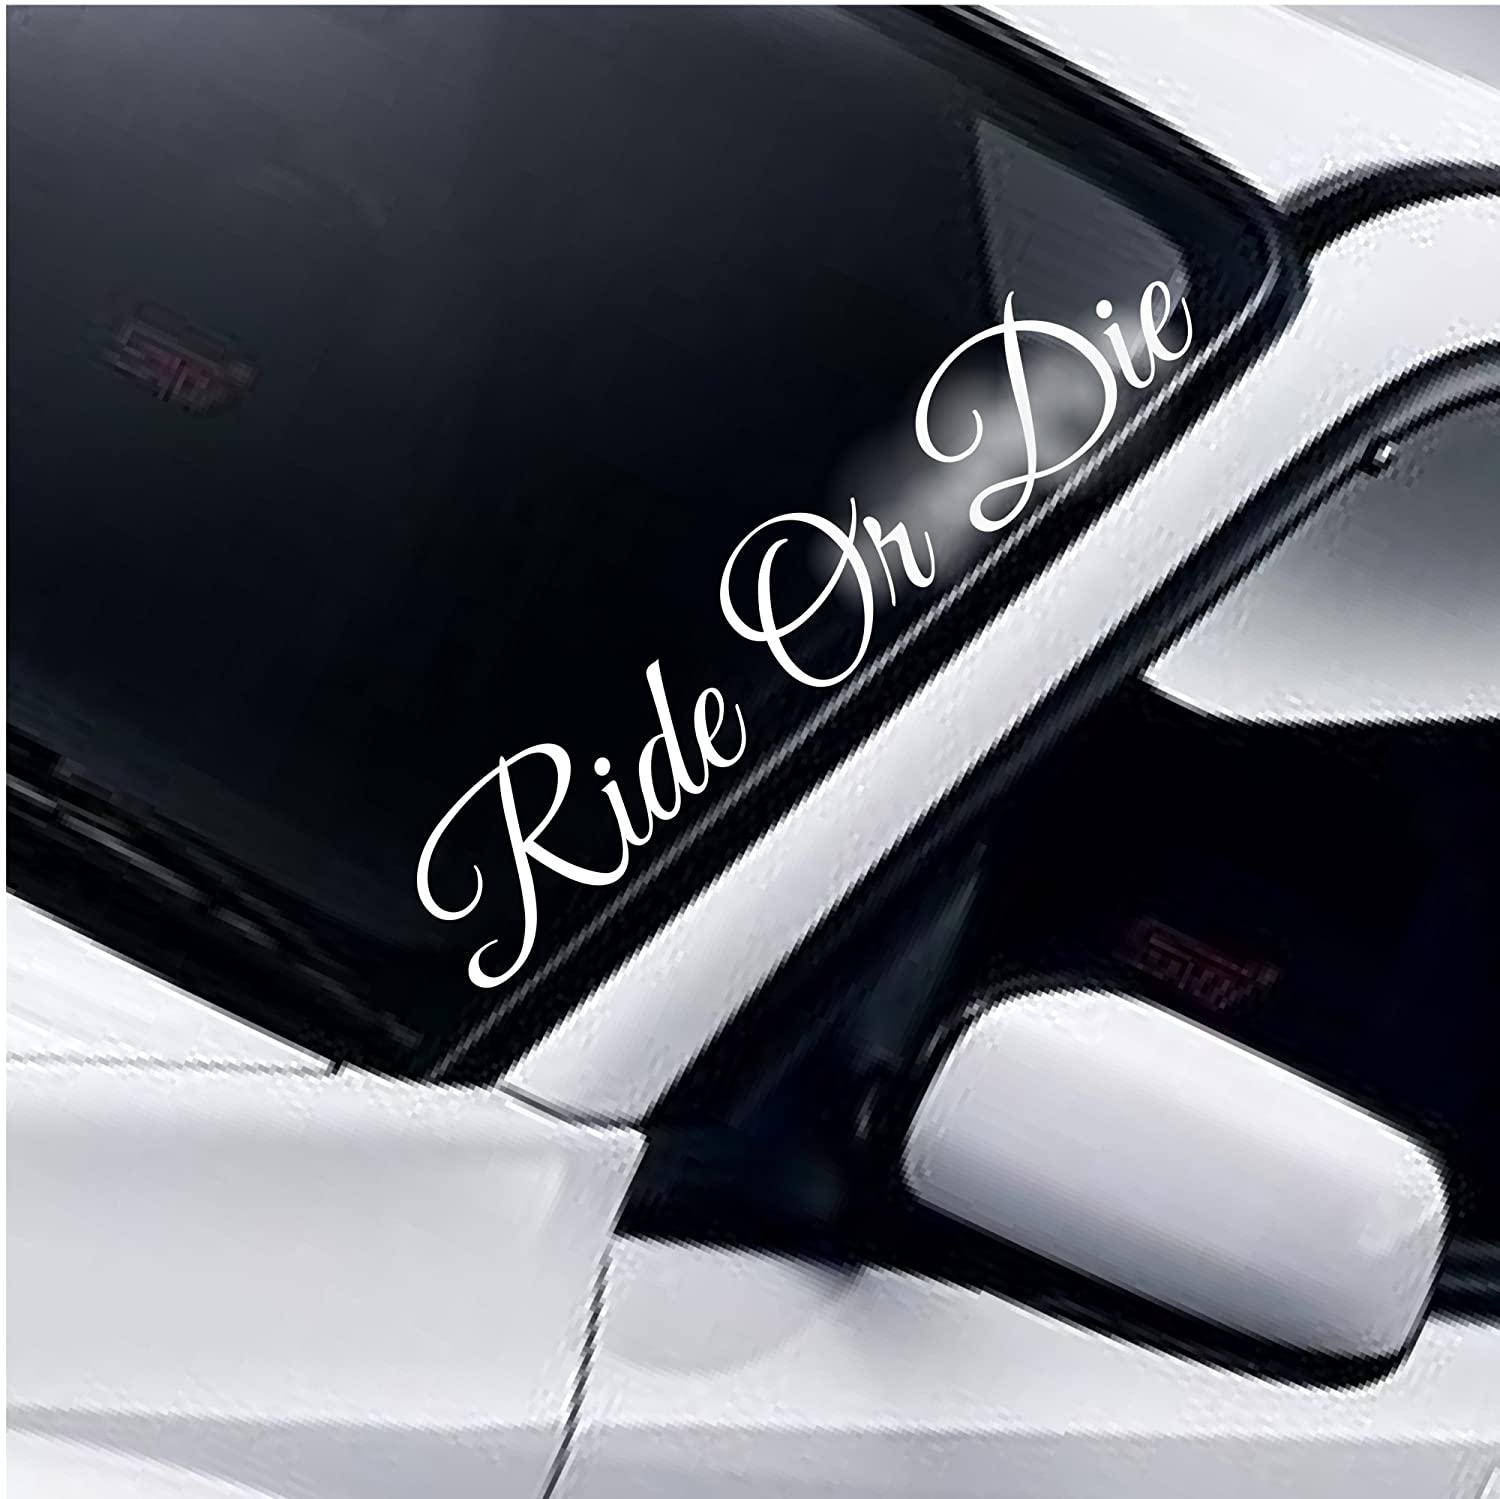 Ride or die windscreen rear window front windscreen sticker dub drift jdm car window sticker amazon co uk car motorbike